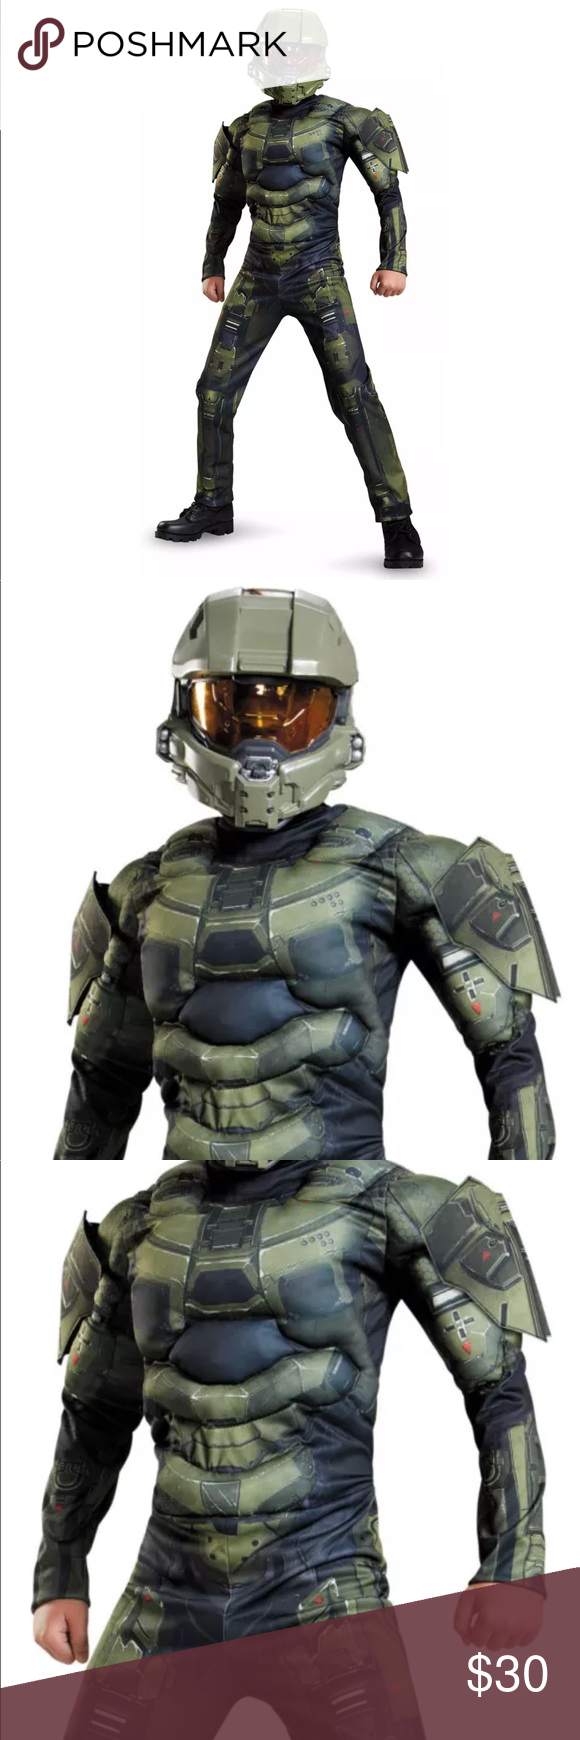 Maschere Costumi e travestimenti Disguise Master Chief Child Half